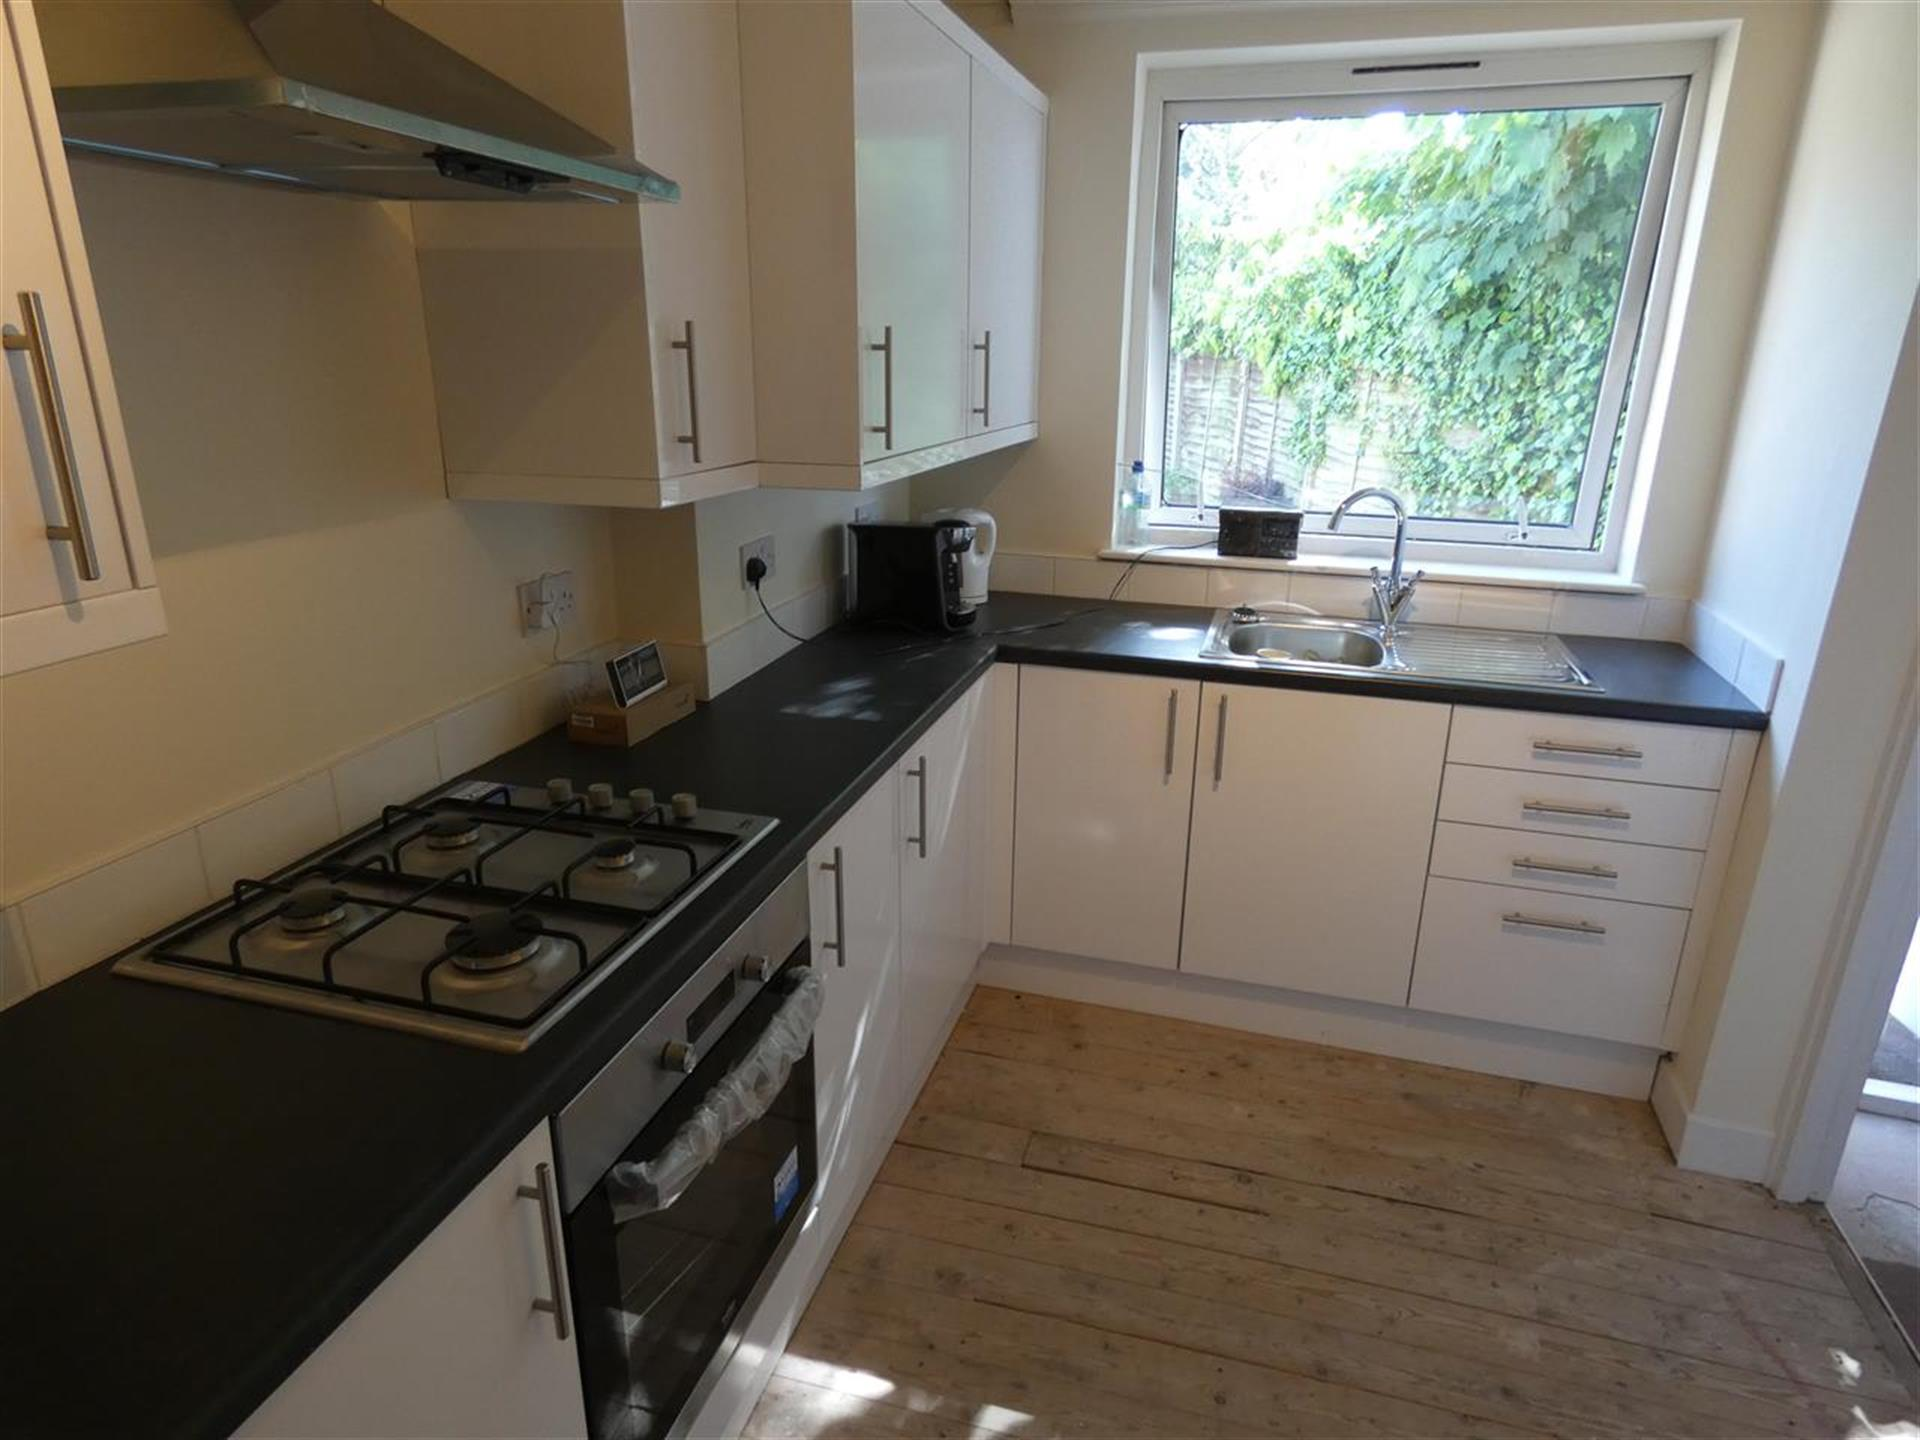 2 Bedroom Bungalow For Sale - Kitchen